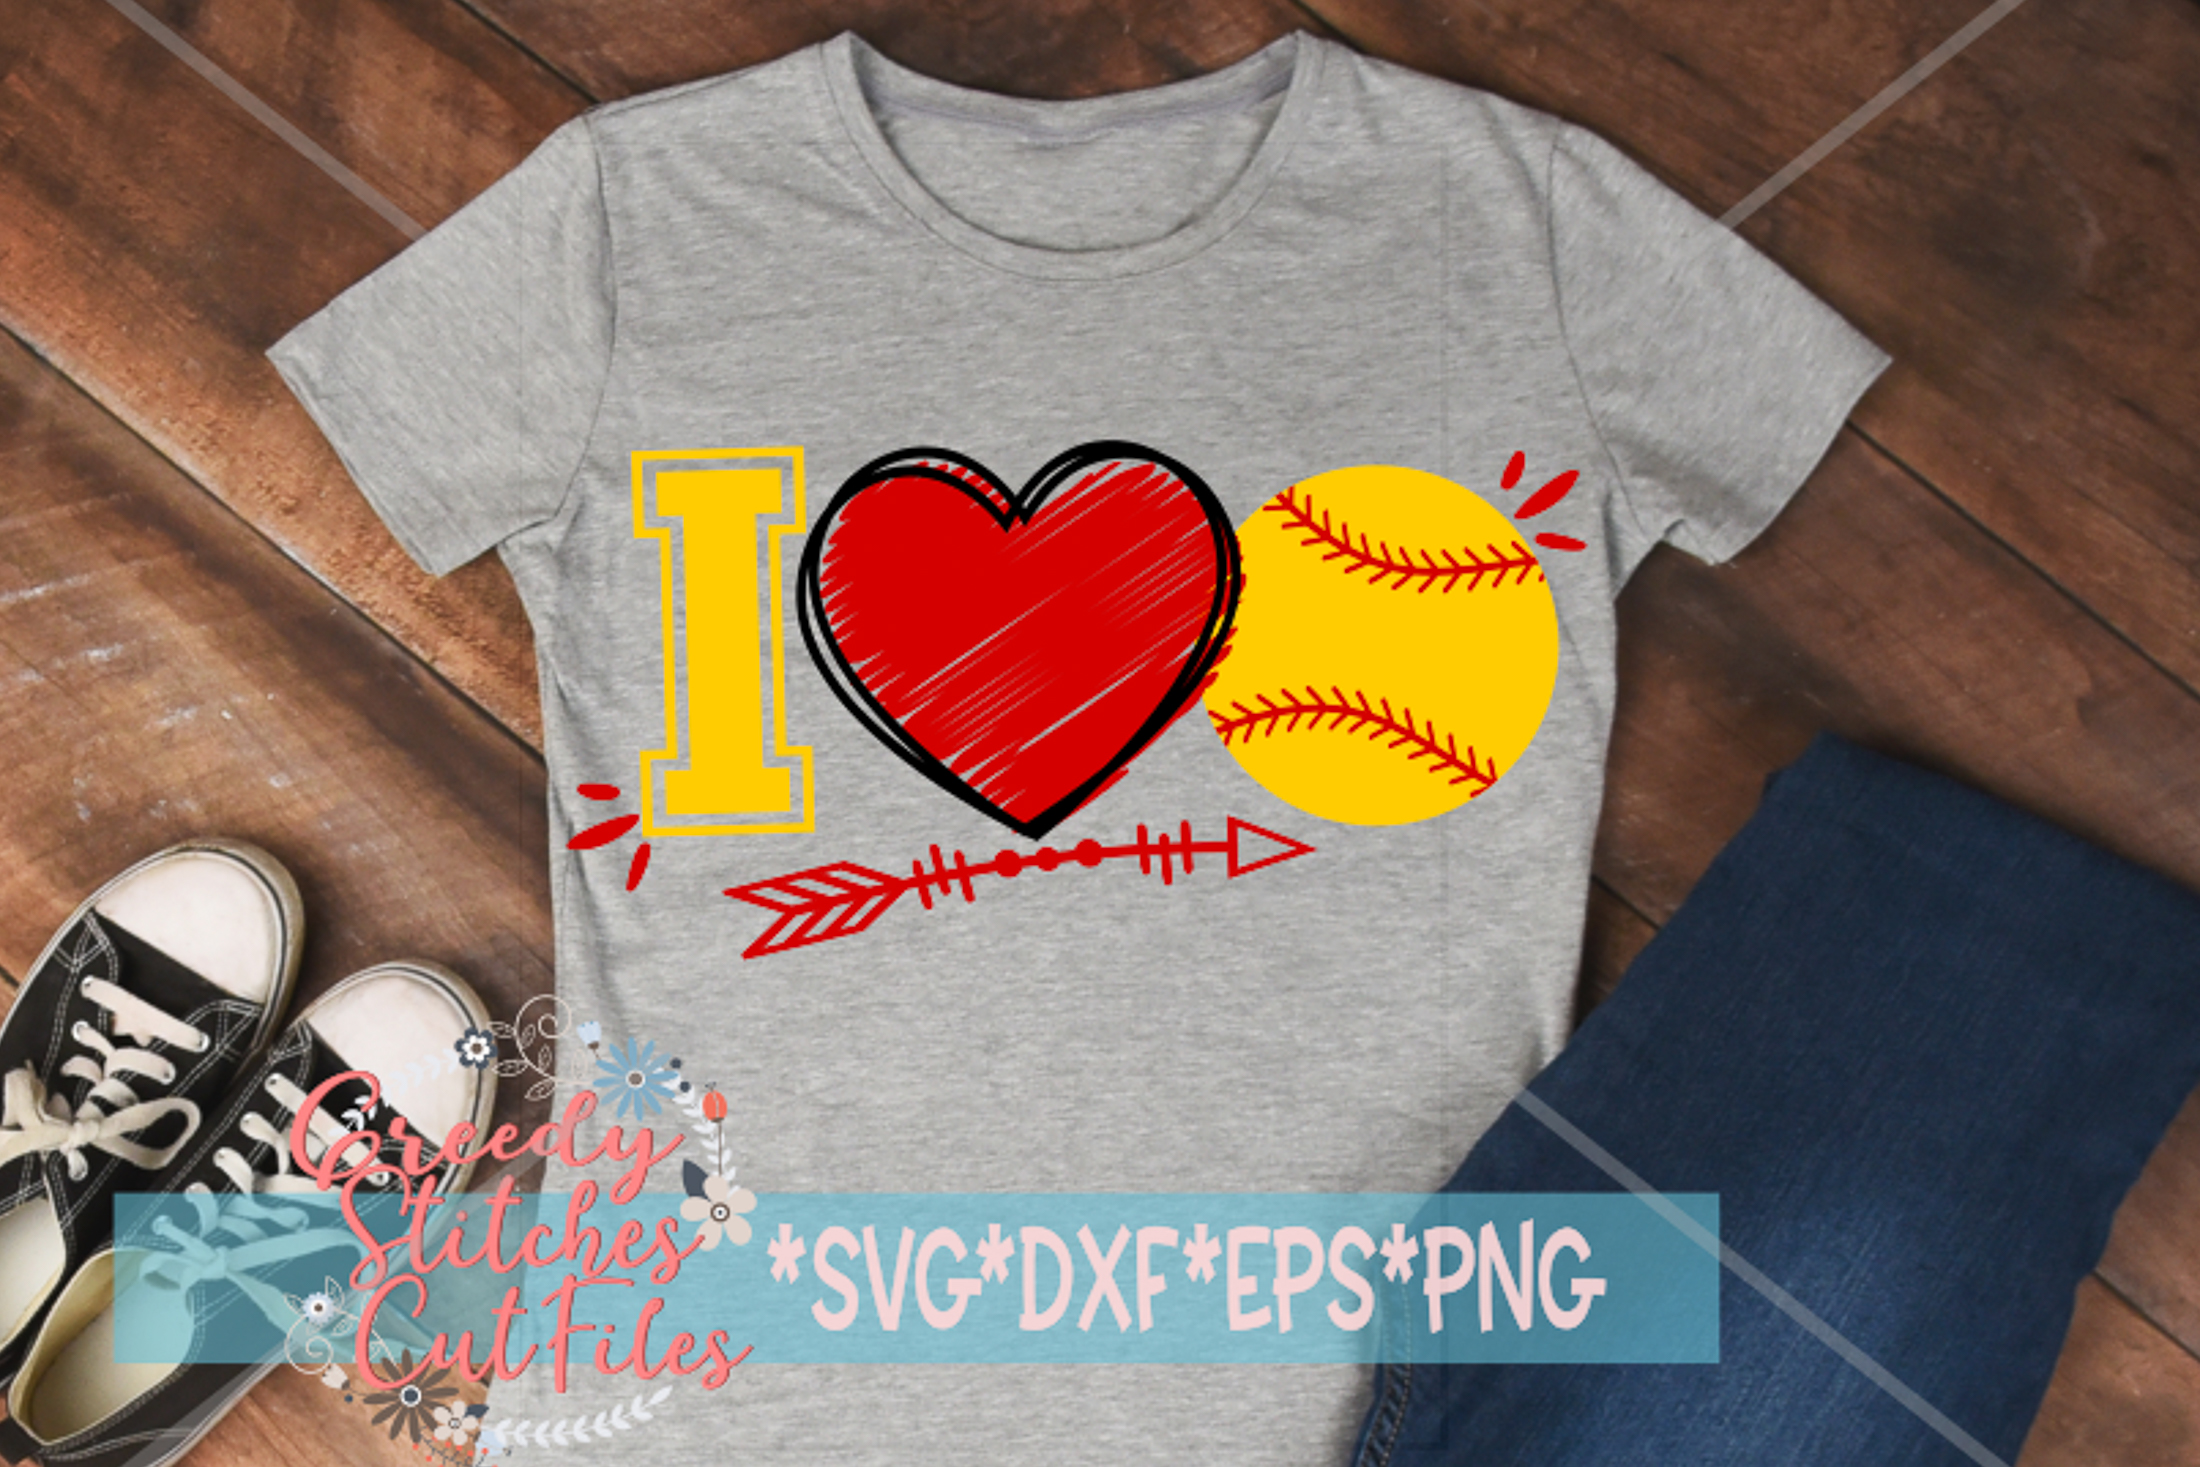 I Love Softball SVG, DXF, EPS, PNG Files example image 2